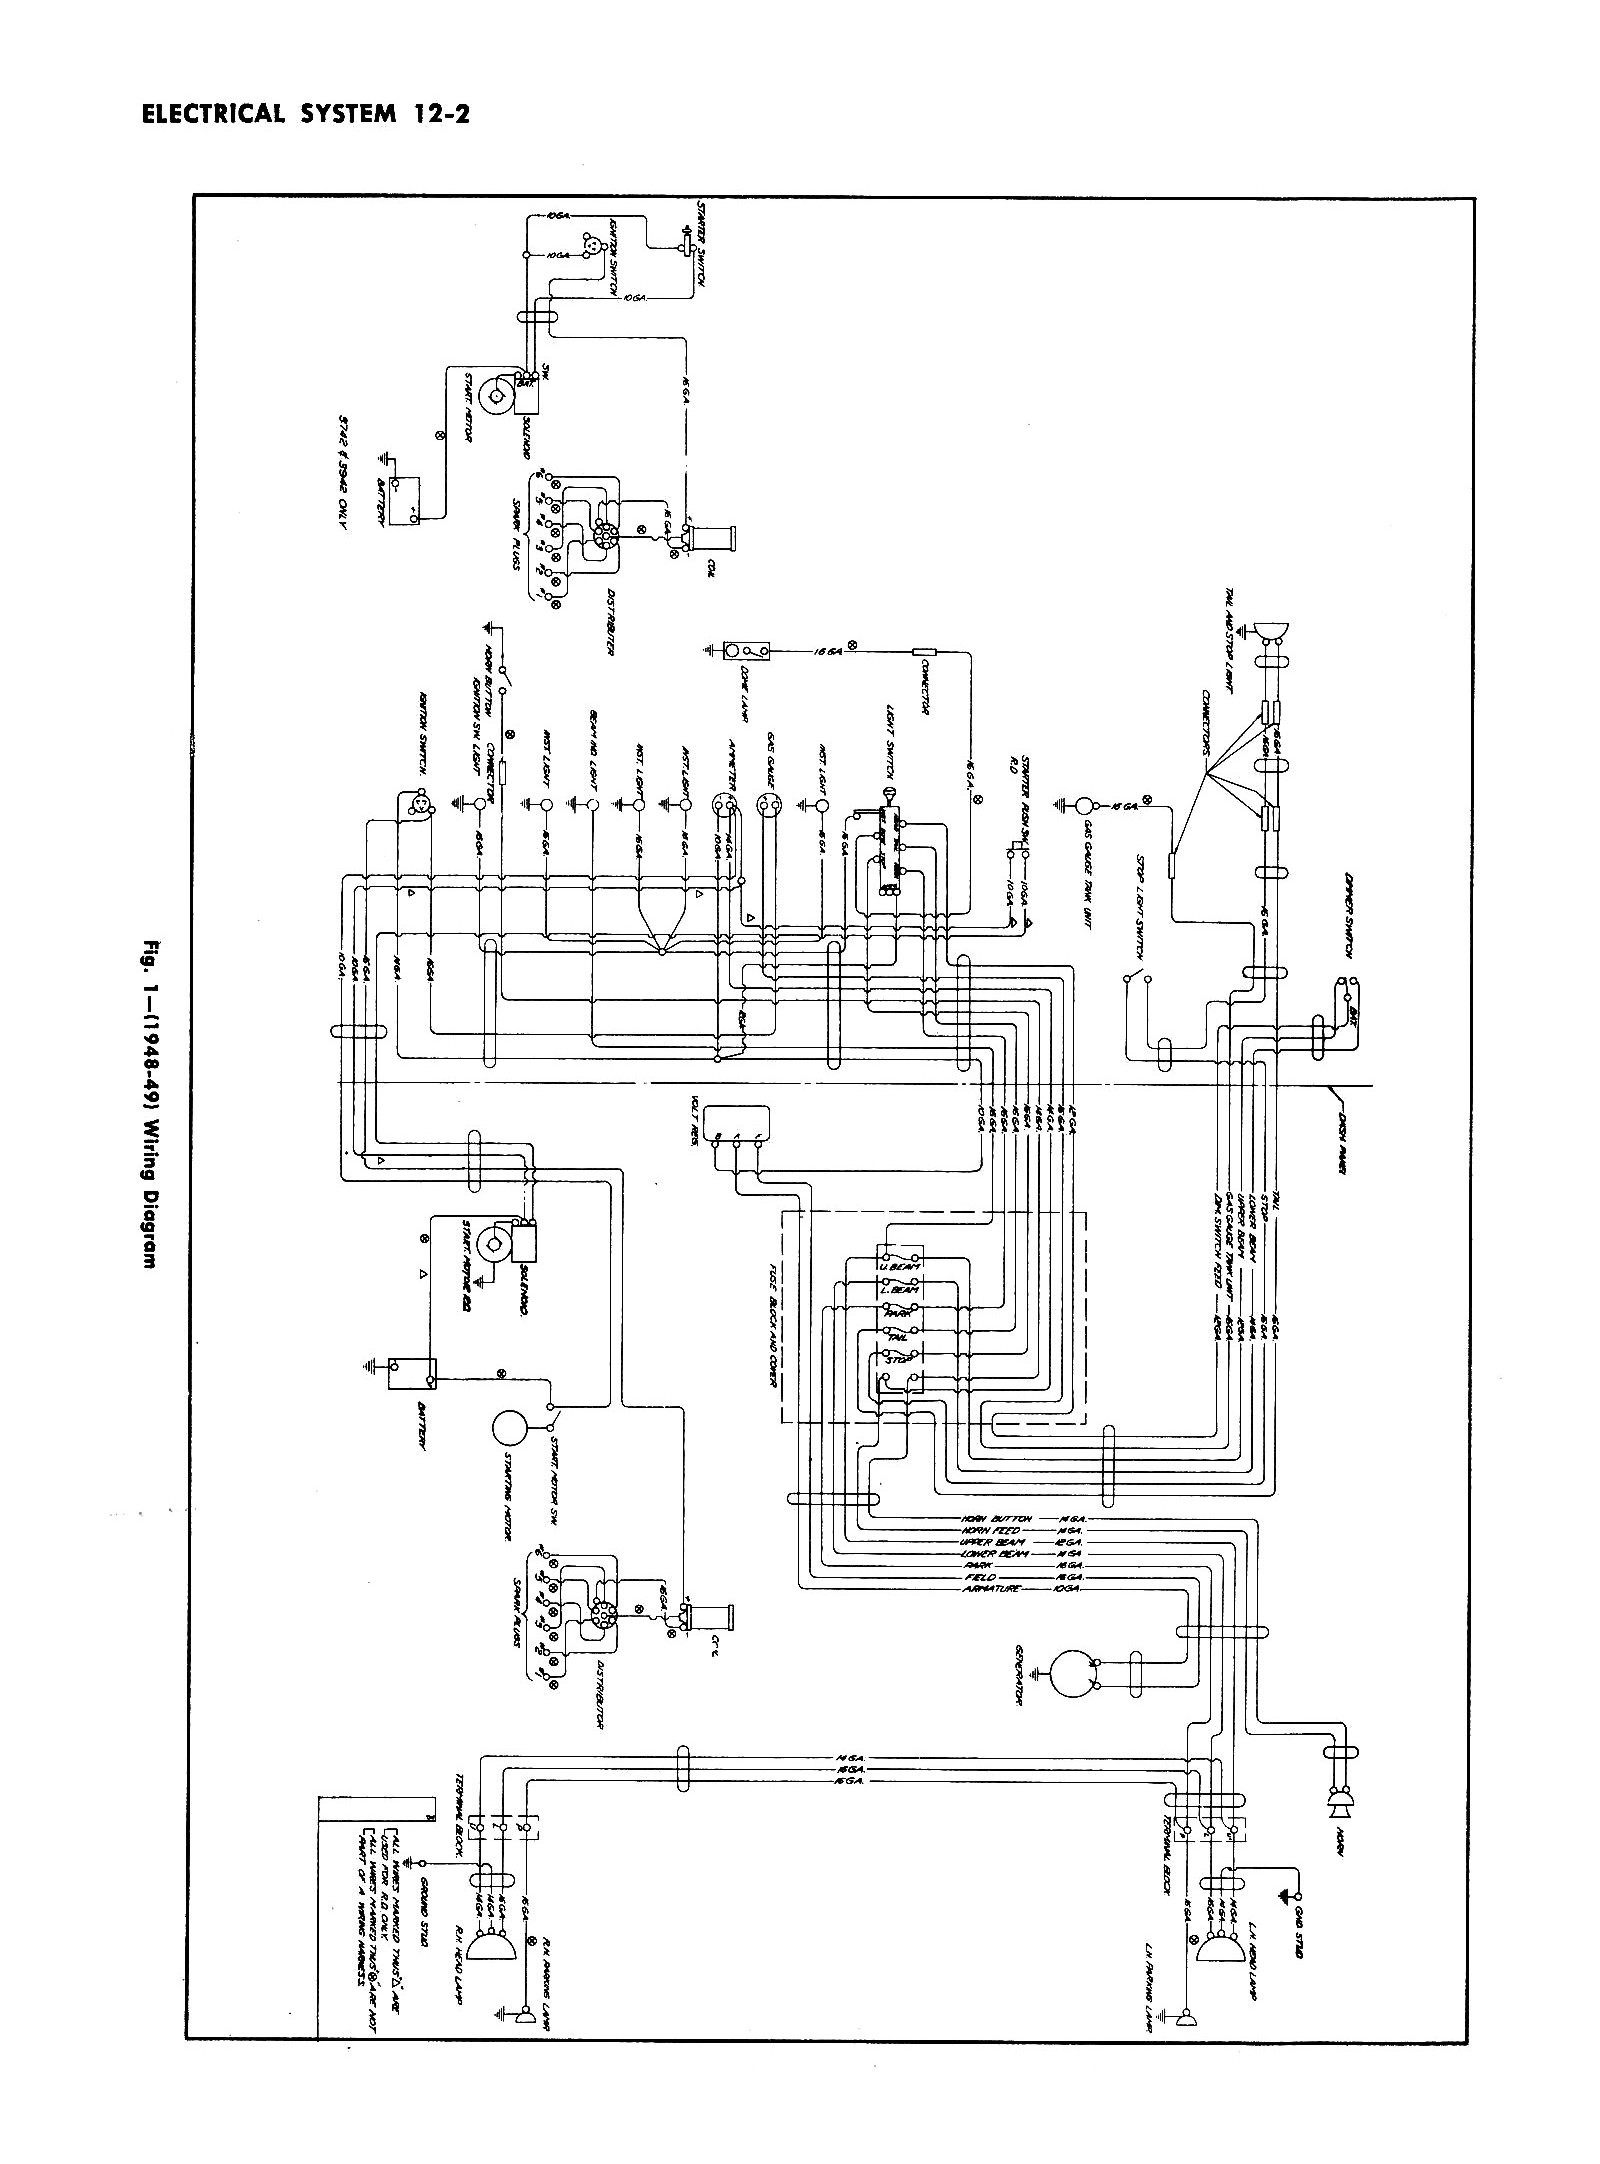 1949 chevy deluxe wiring harness auto electrical wiring diagram u2022 rh 6weeks co uk